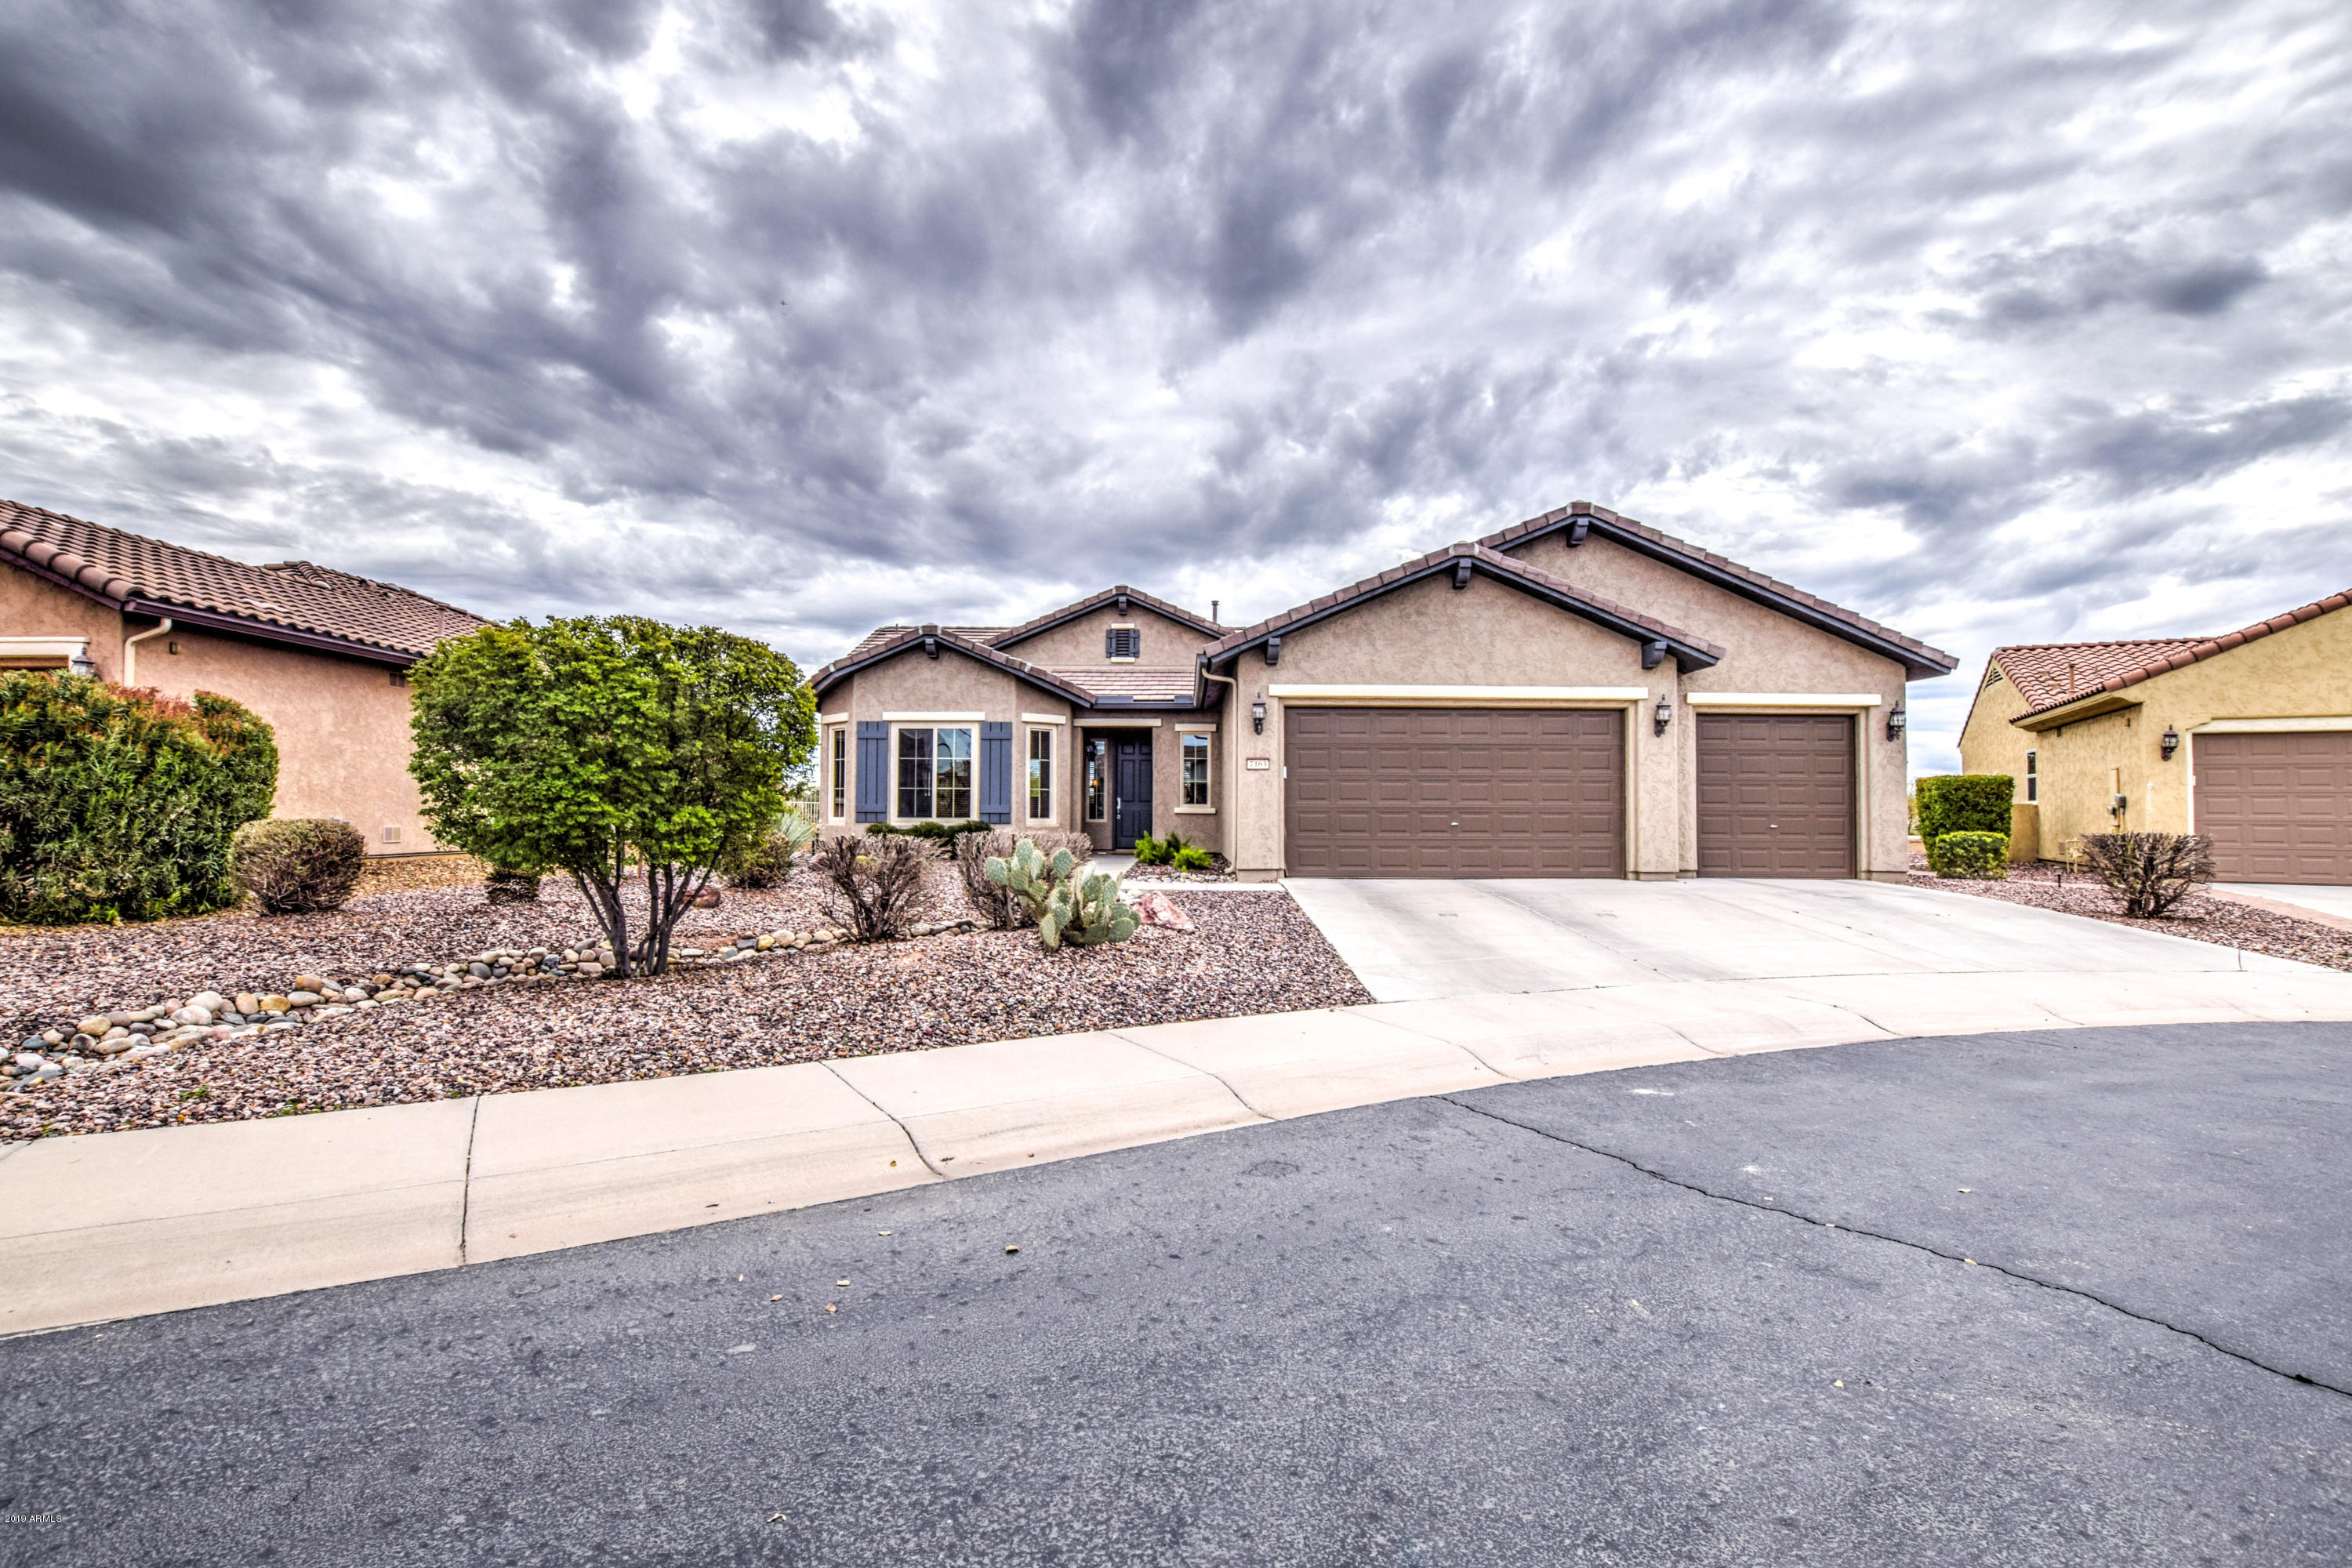 Photo for 7163 W Heritage Way, Florence, AZ 85132 (MLS # 5865959)